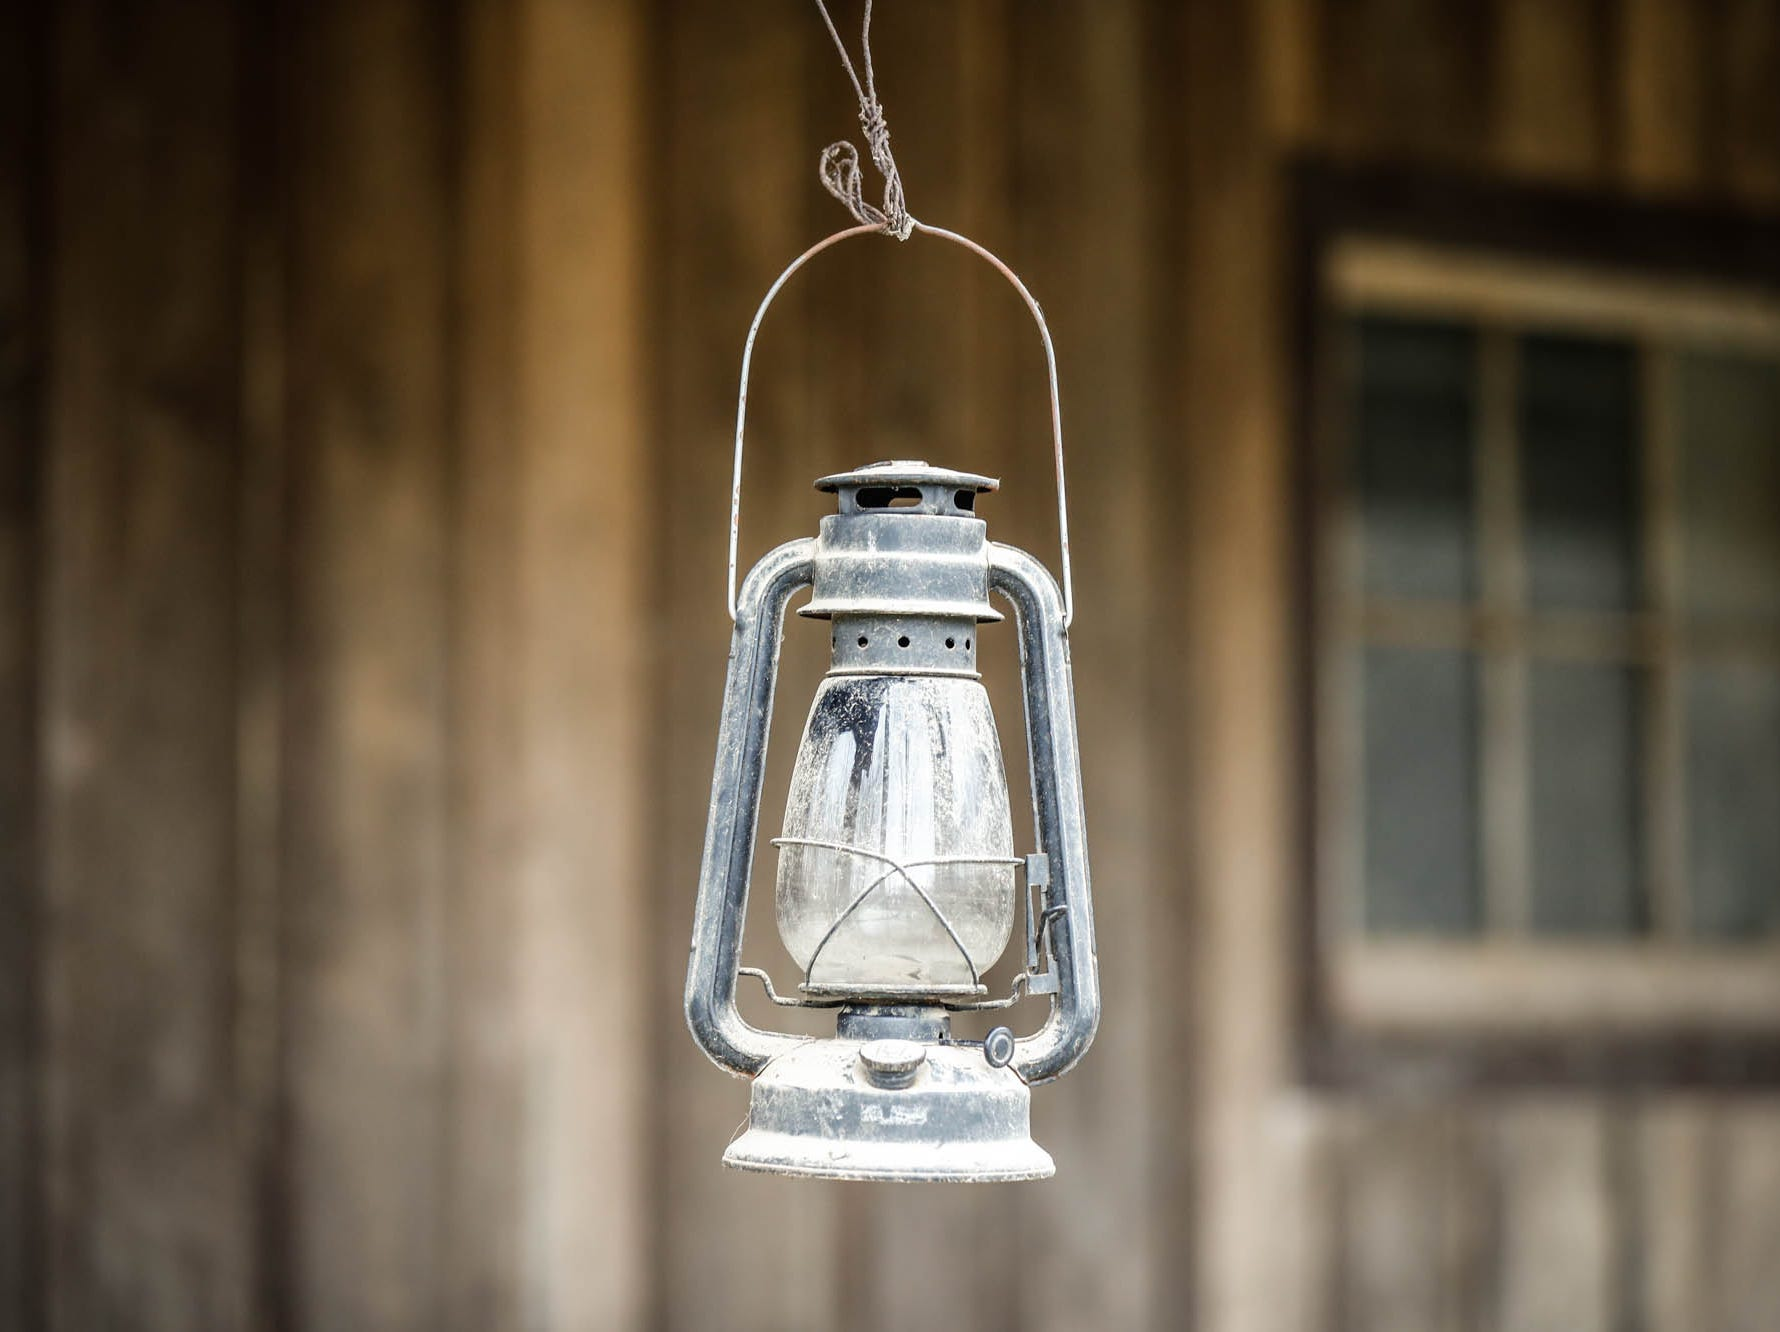 An antique lantern hangs from a one-hundred-year-old barn moved from northern Indiana which sits behind a traditional style $2m home up for sale in Bargersville Ind. on Wednesday, Jan. 9, 2019. The house and barn sit on 8.1 acres and features two horse stalls and a man cave with a vintage stove.